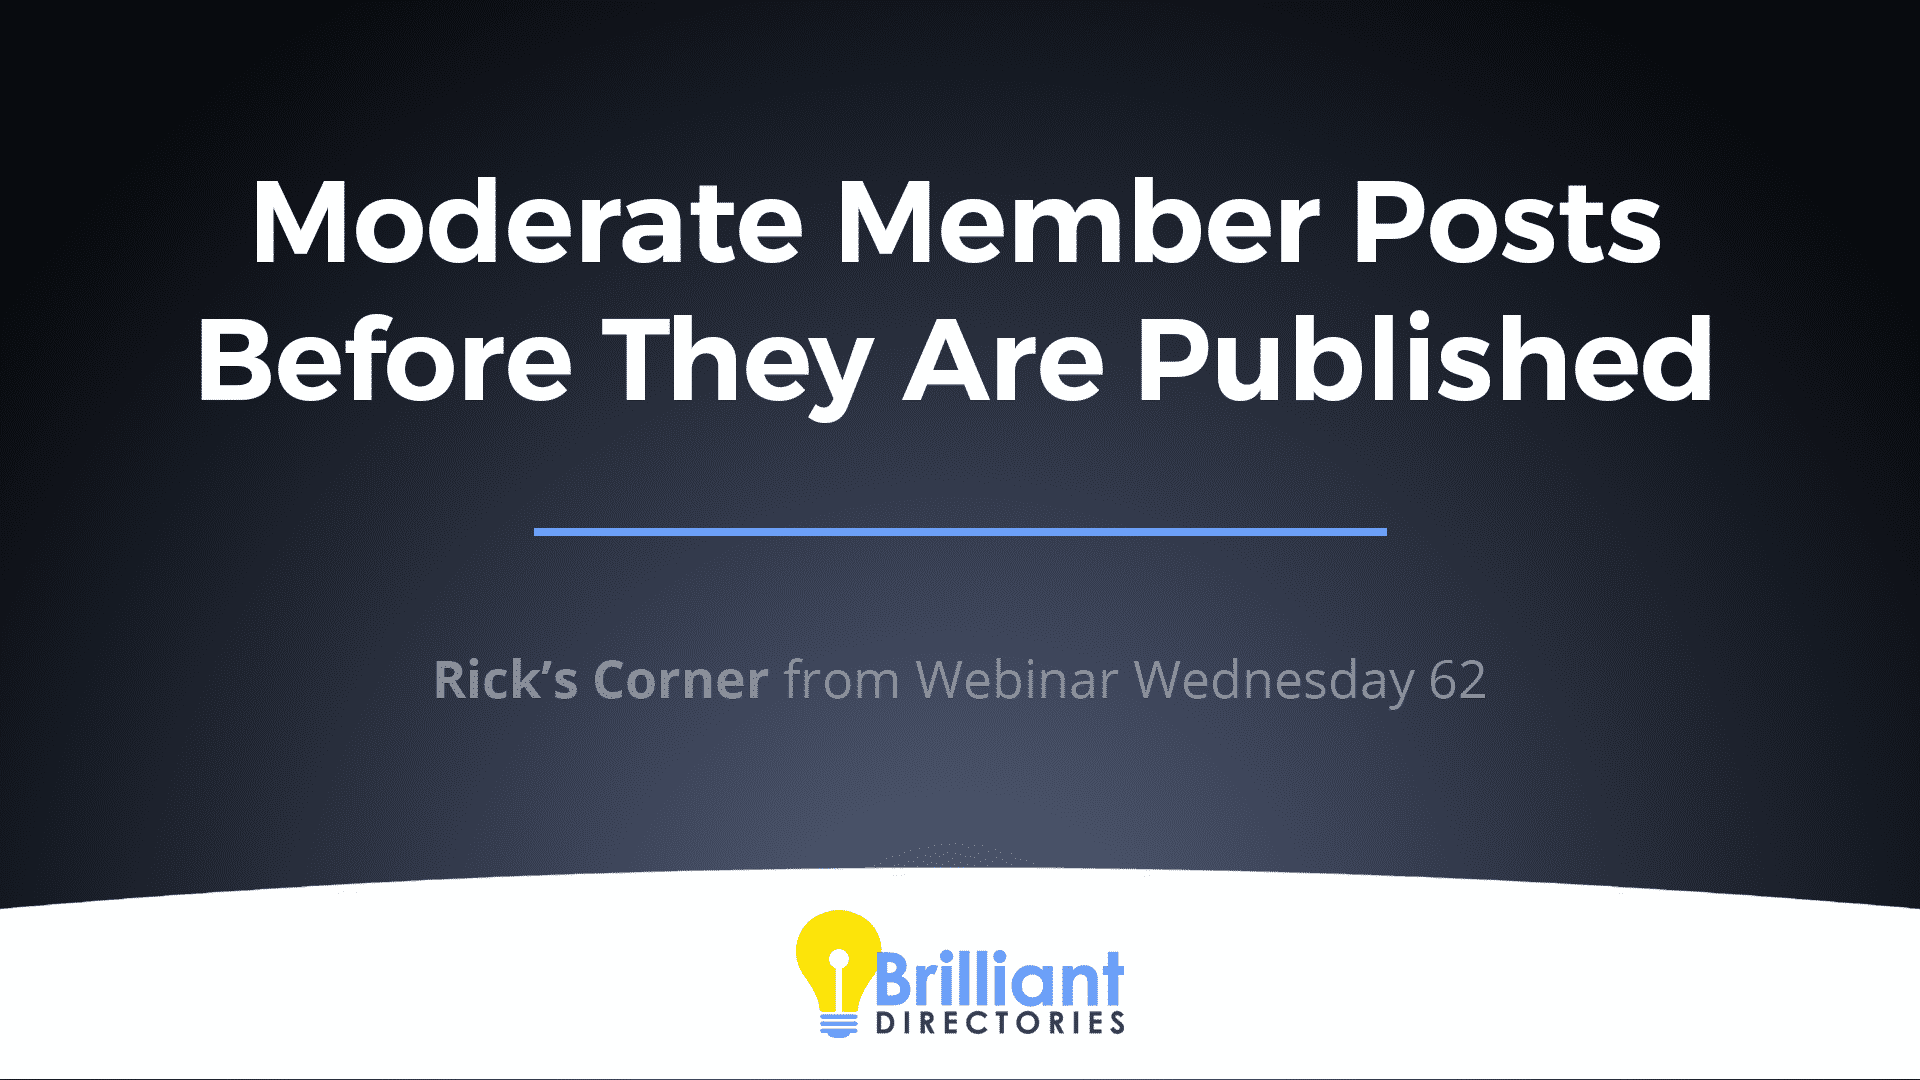 https://www.brilliantdirectories.com/blog/how-to-moderate-posts-from-members-before-they-are-published-in-your-directory